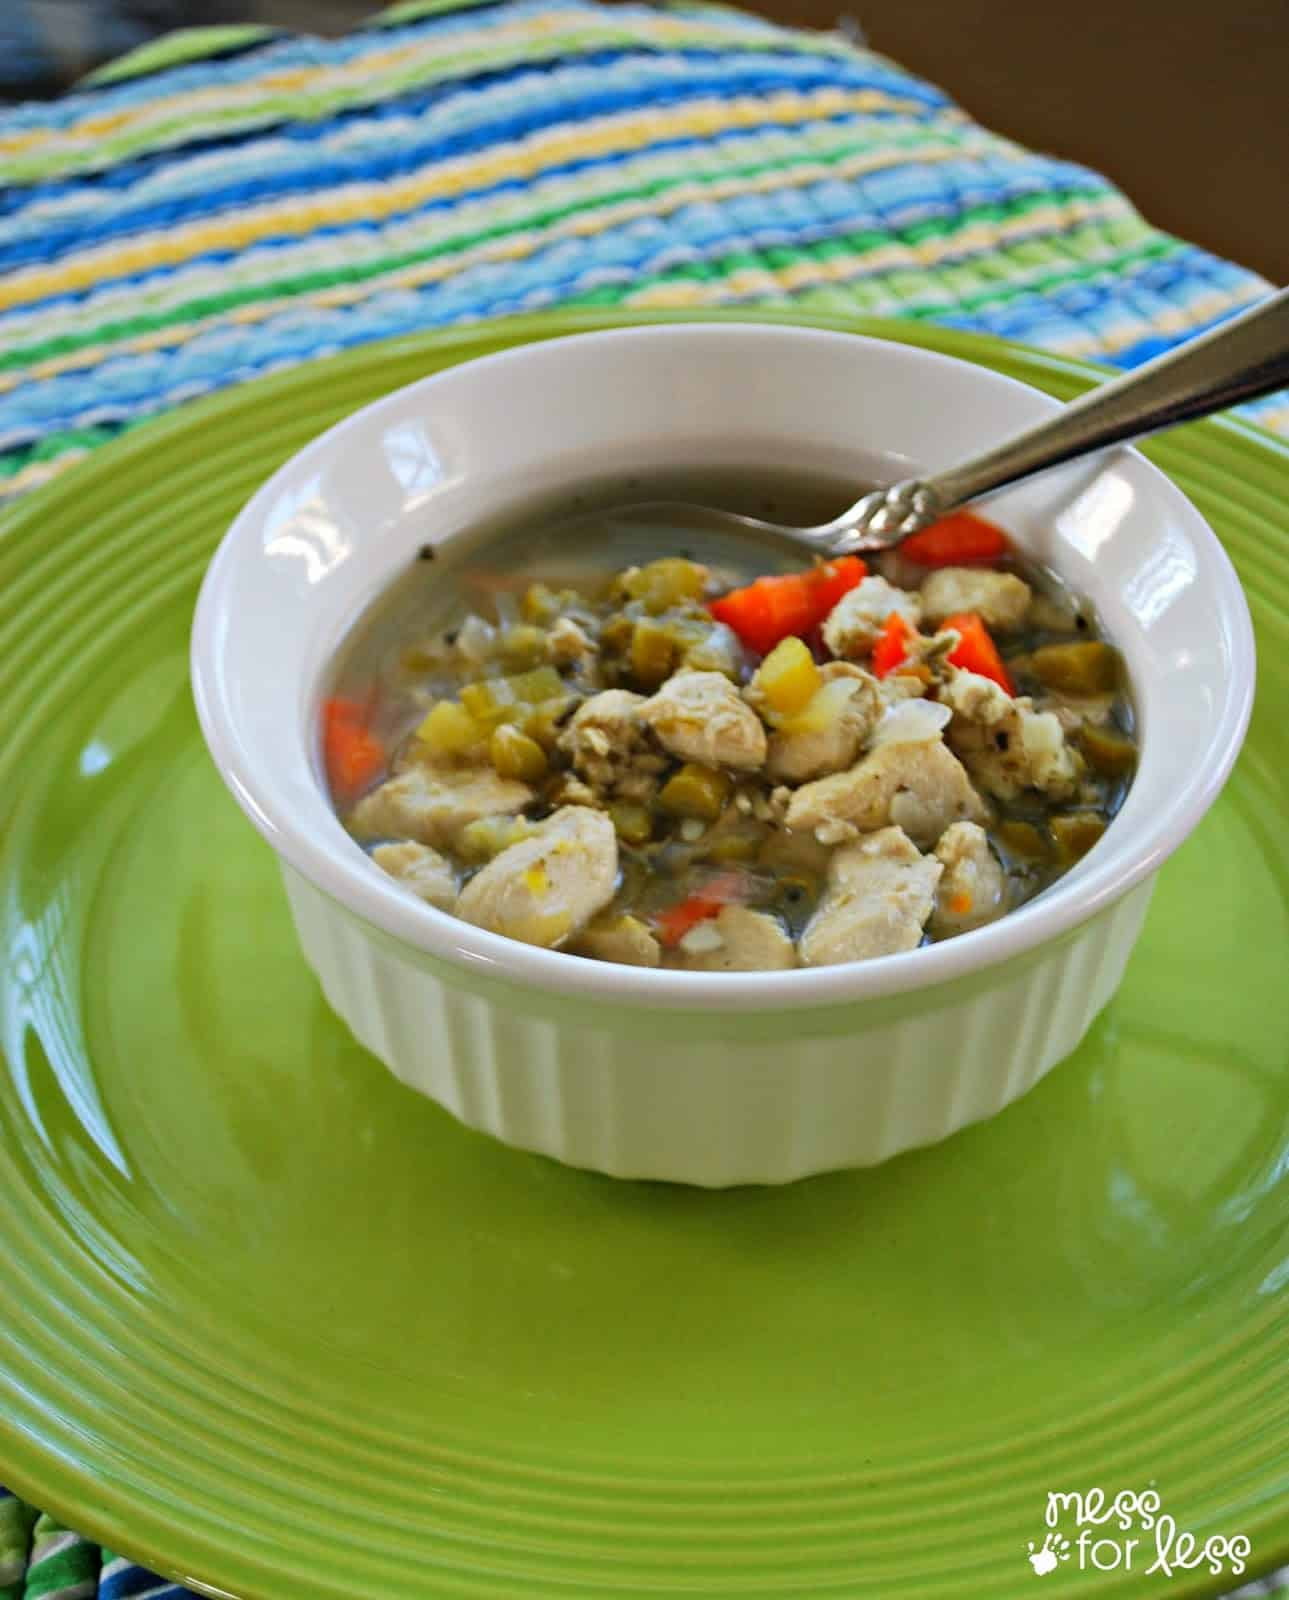 Chicken Vegetable Soup - So comforting and filling!